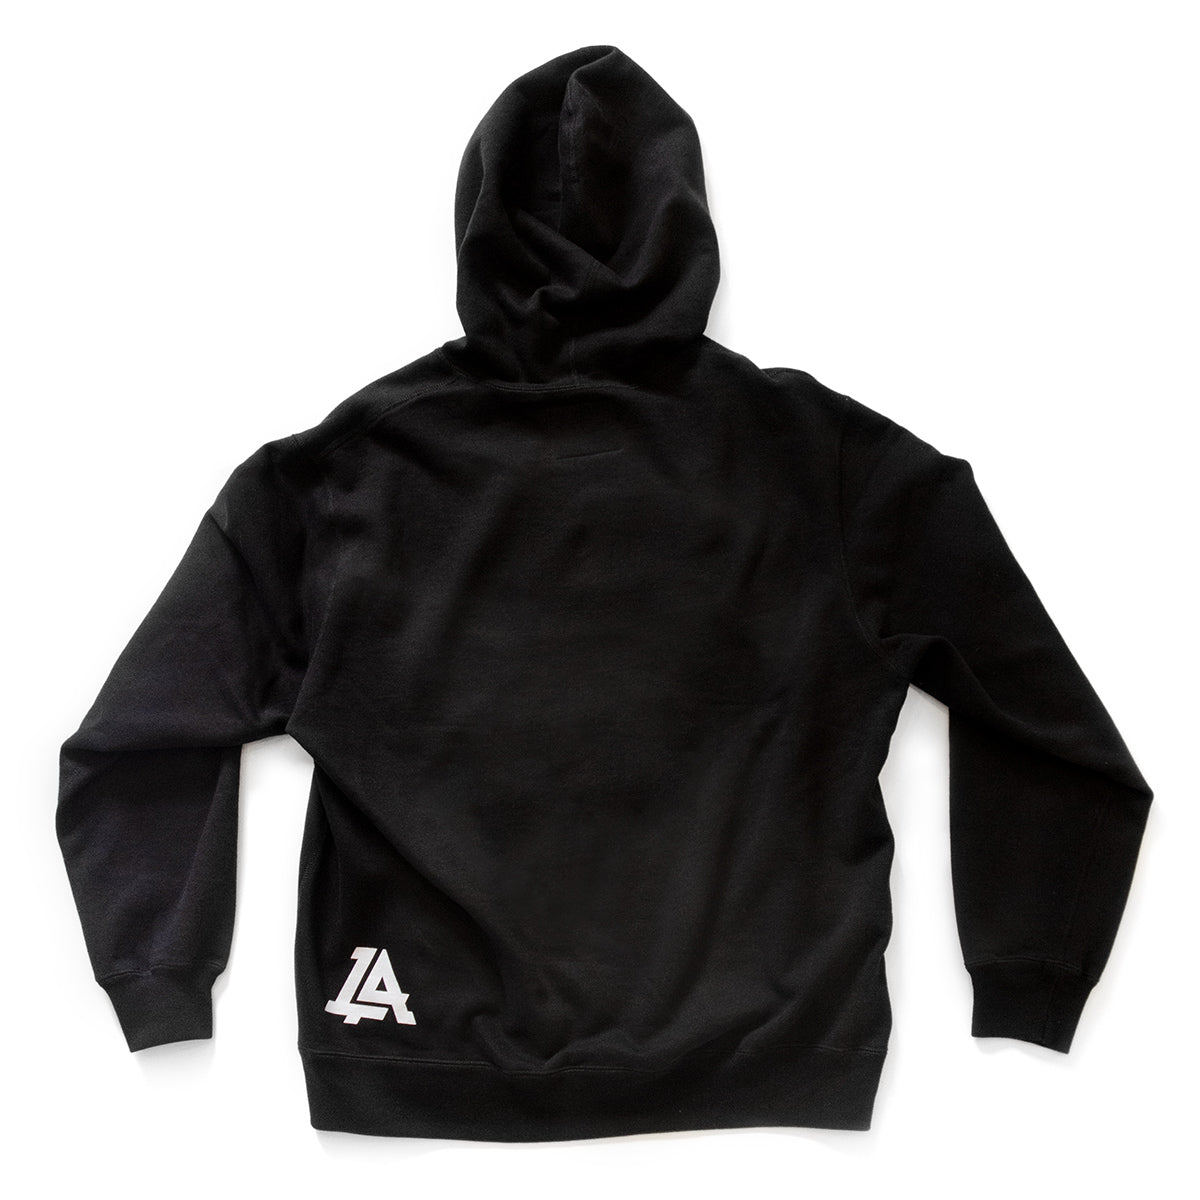 Lost Art Canada - black icon hoodie sweatshirt back view